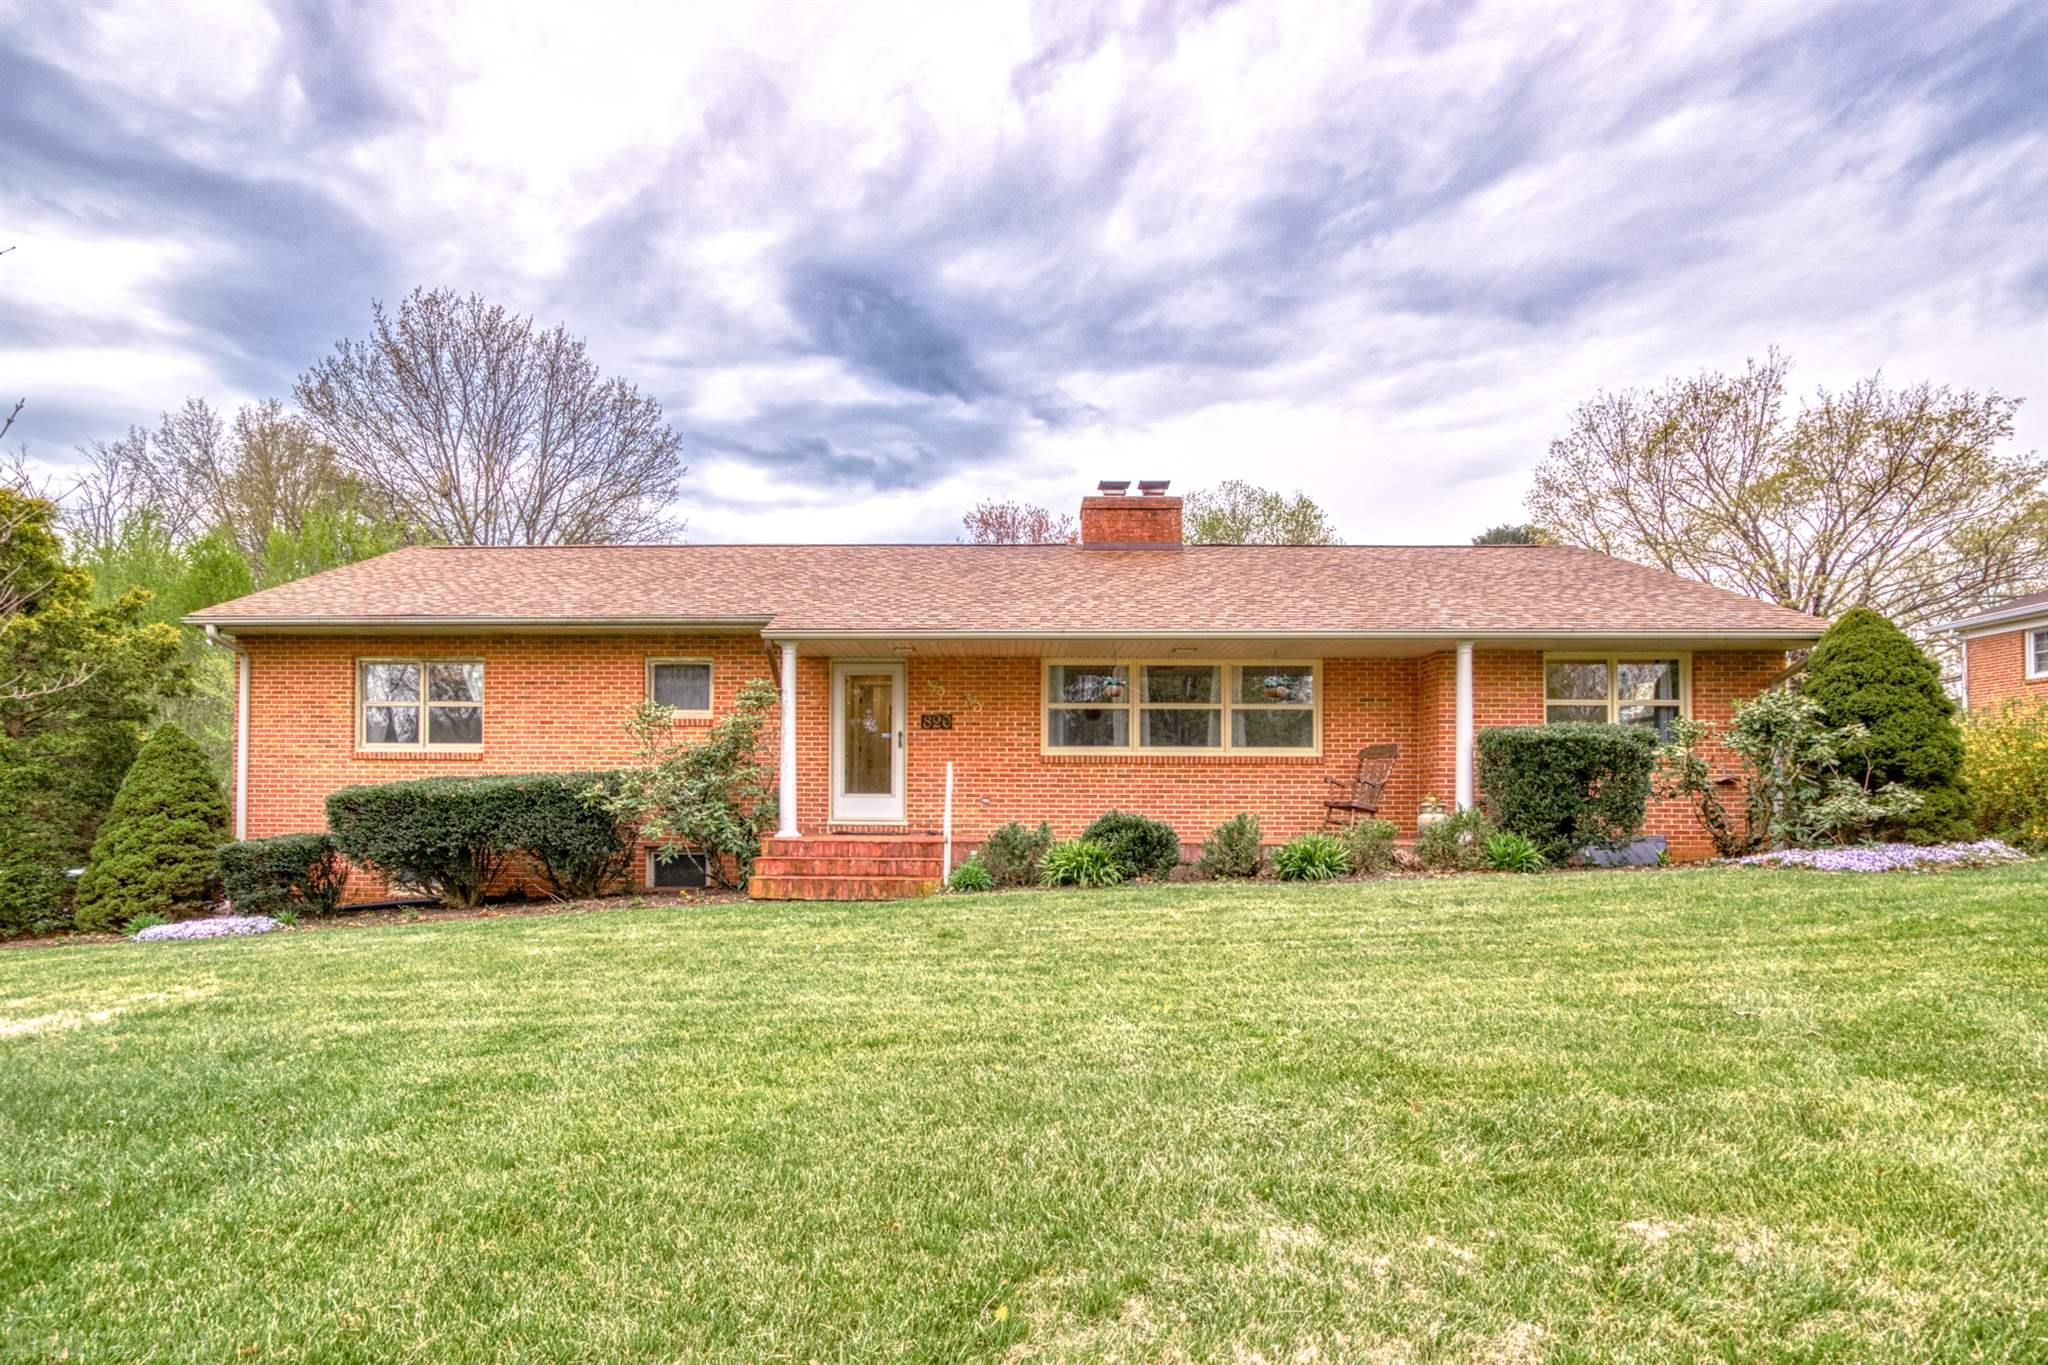 Check out this fantastic home in Popular McBryde Village!  This spacious brick ranch sits on a corner lot and is close to all the conveniences of Blacksburg. Four Bedrooms, three baths, large rooms plus a 2 car garage and private yard all add to what it has to offer. Roof and gas furnace upgrades were done in 2016. This home has lots of hardwood and tile flooring. The large kitchen has solid surface counters.  The floorplans are included in the list of photos.